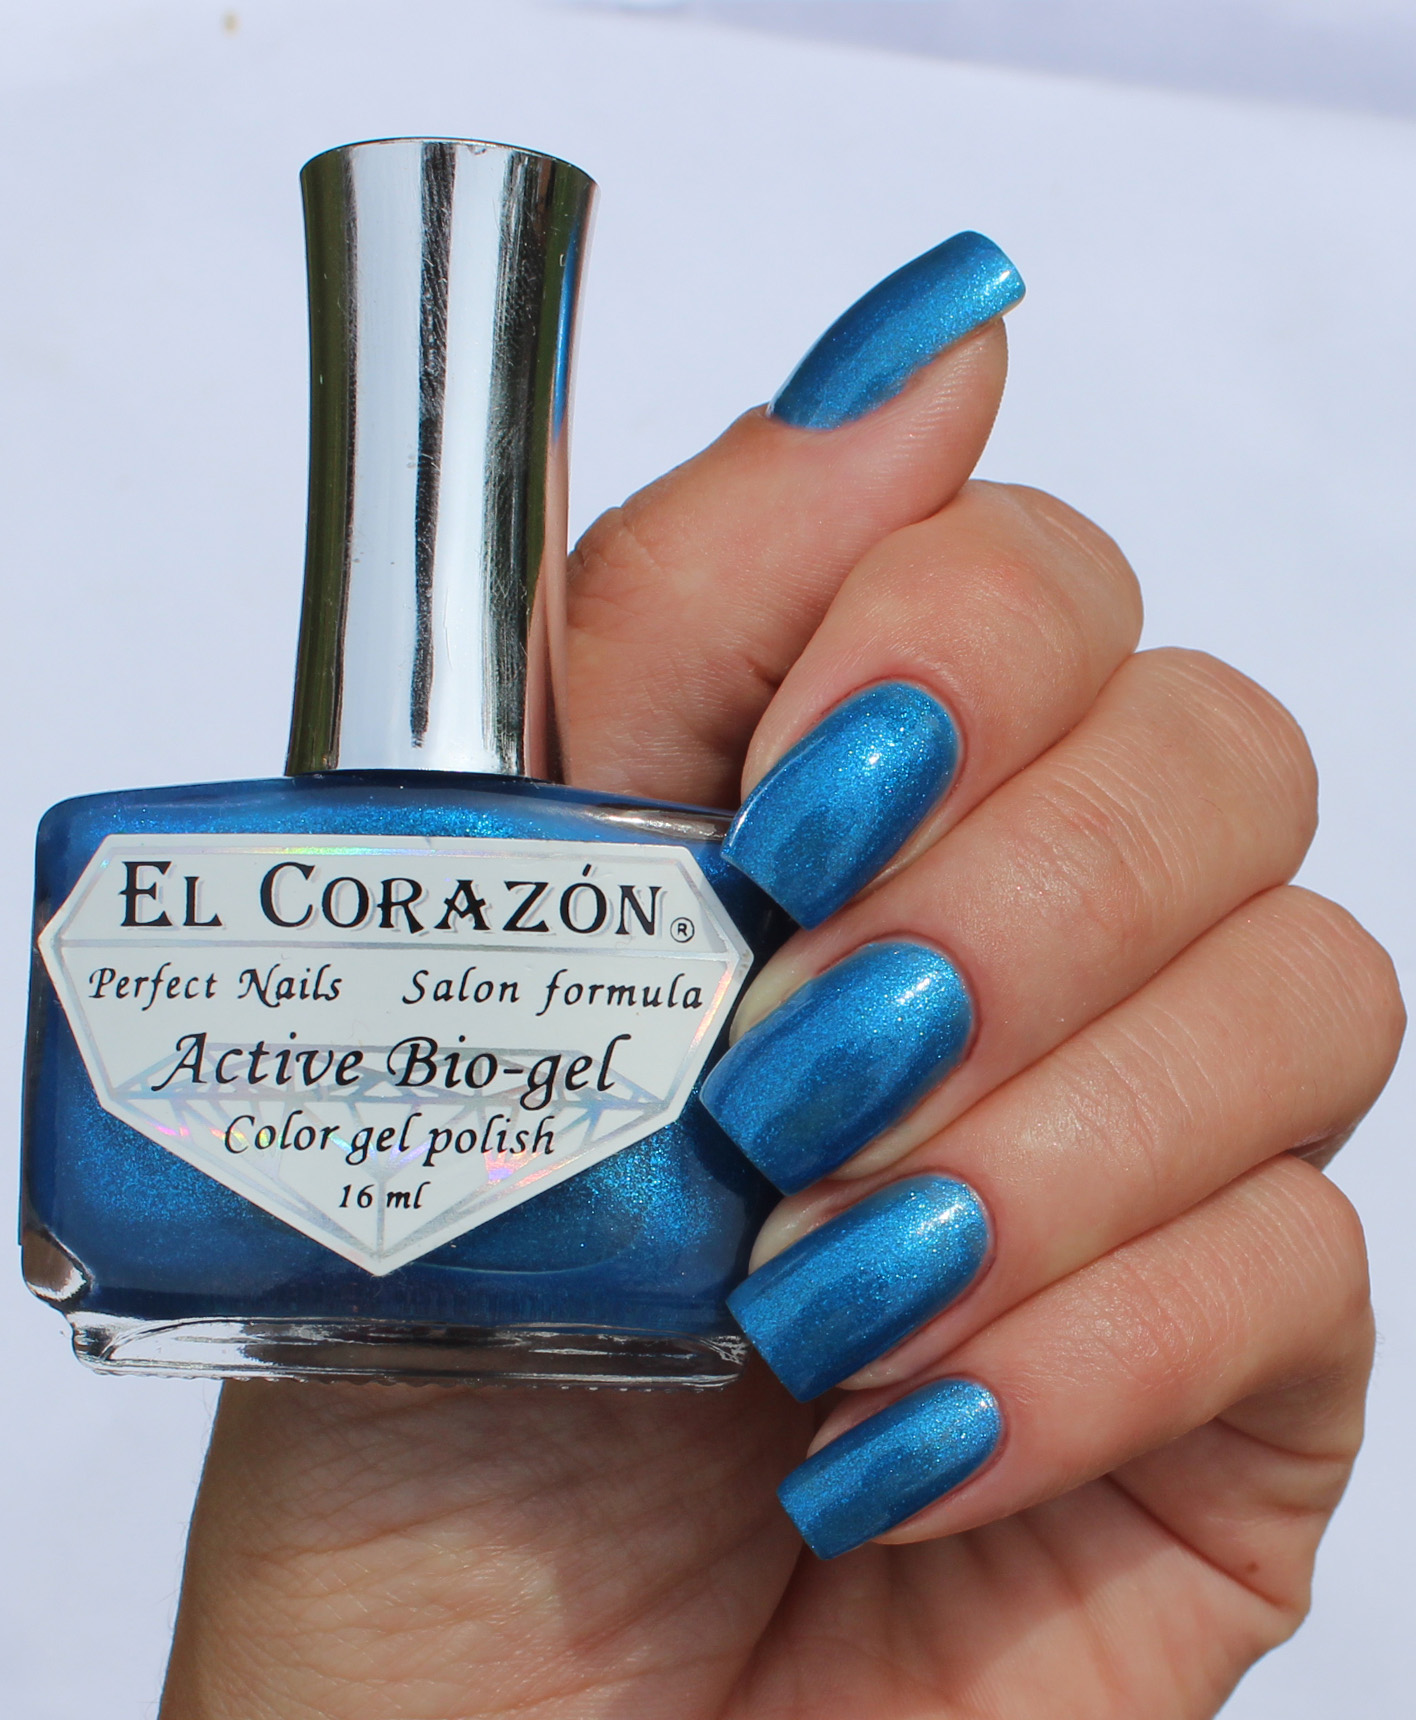 EL Corazon Active Bio-gel Color gel polish Magic №423/576 Magic Heart of Ocean